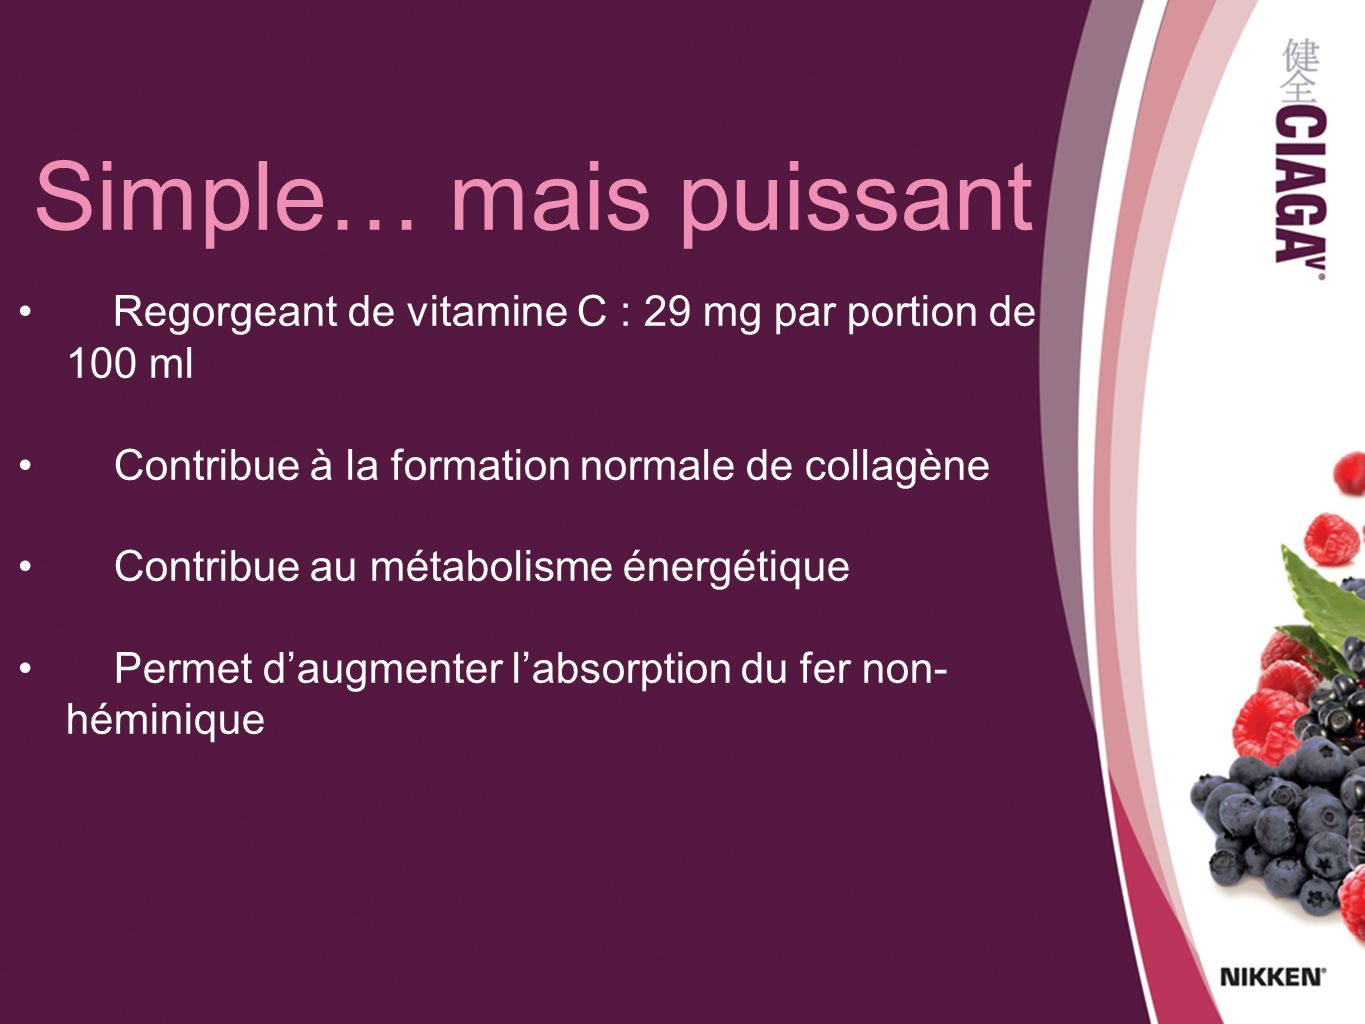 Simple… mais puissant Regorgeant de vitamine C : 29 mg par portion de 100 ml. Contribue à la formation normale de collagène.